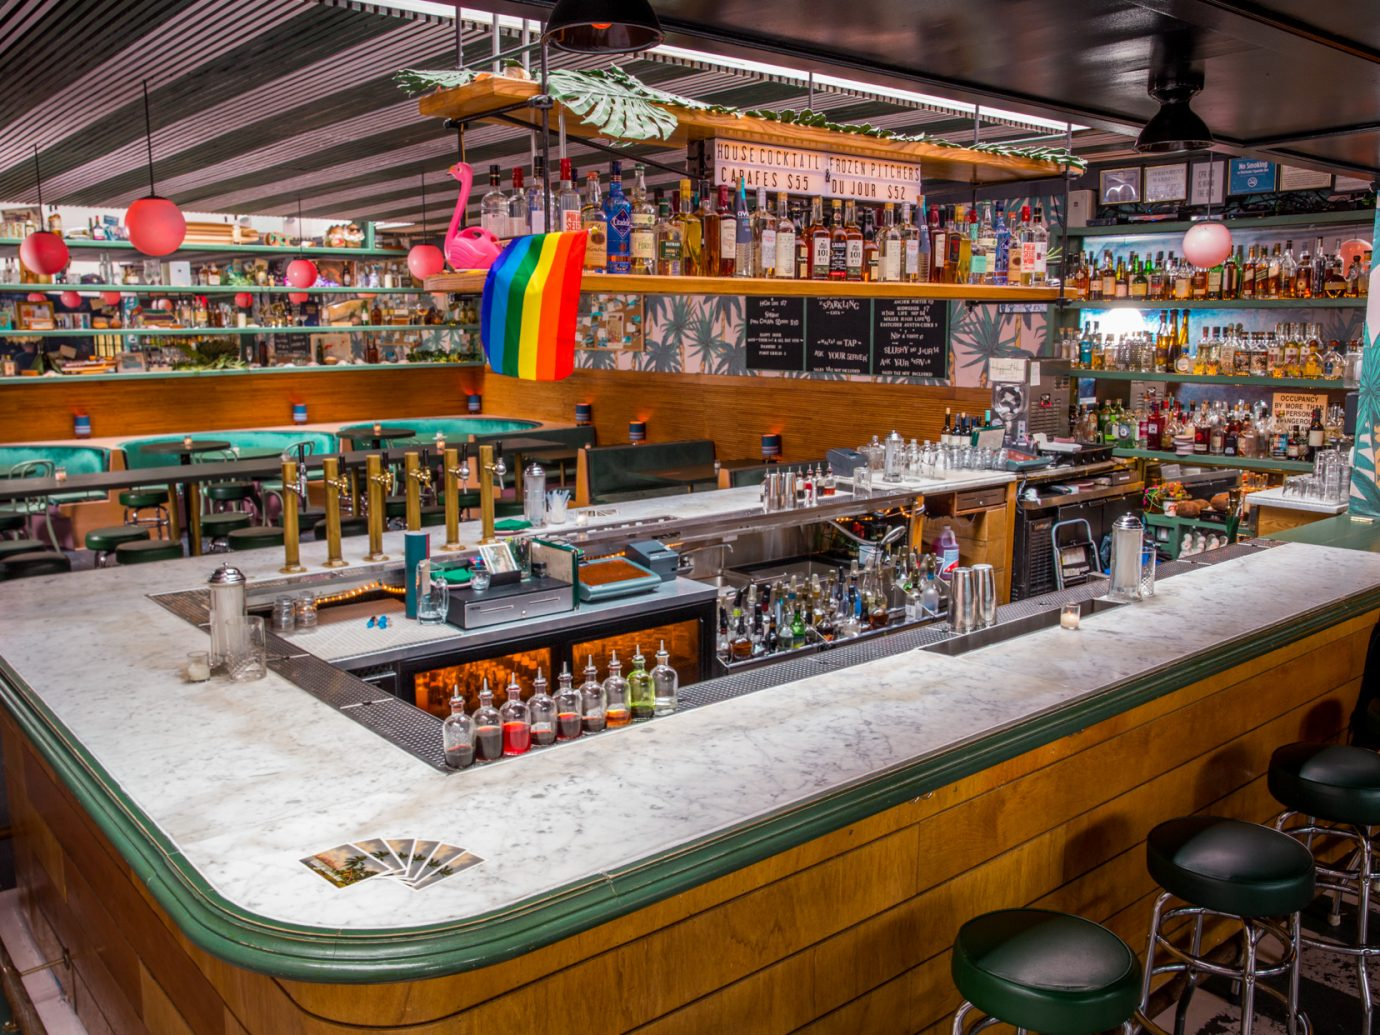 Bar area with gay pride flag at The Happiest Hour in West Village